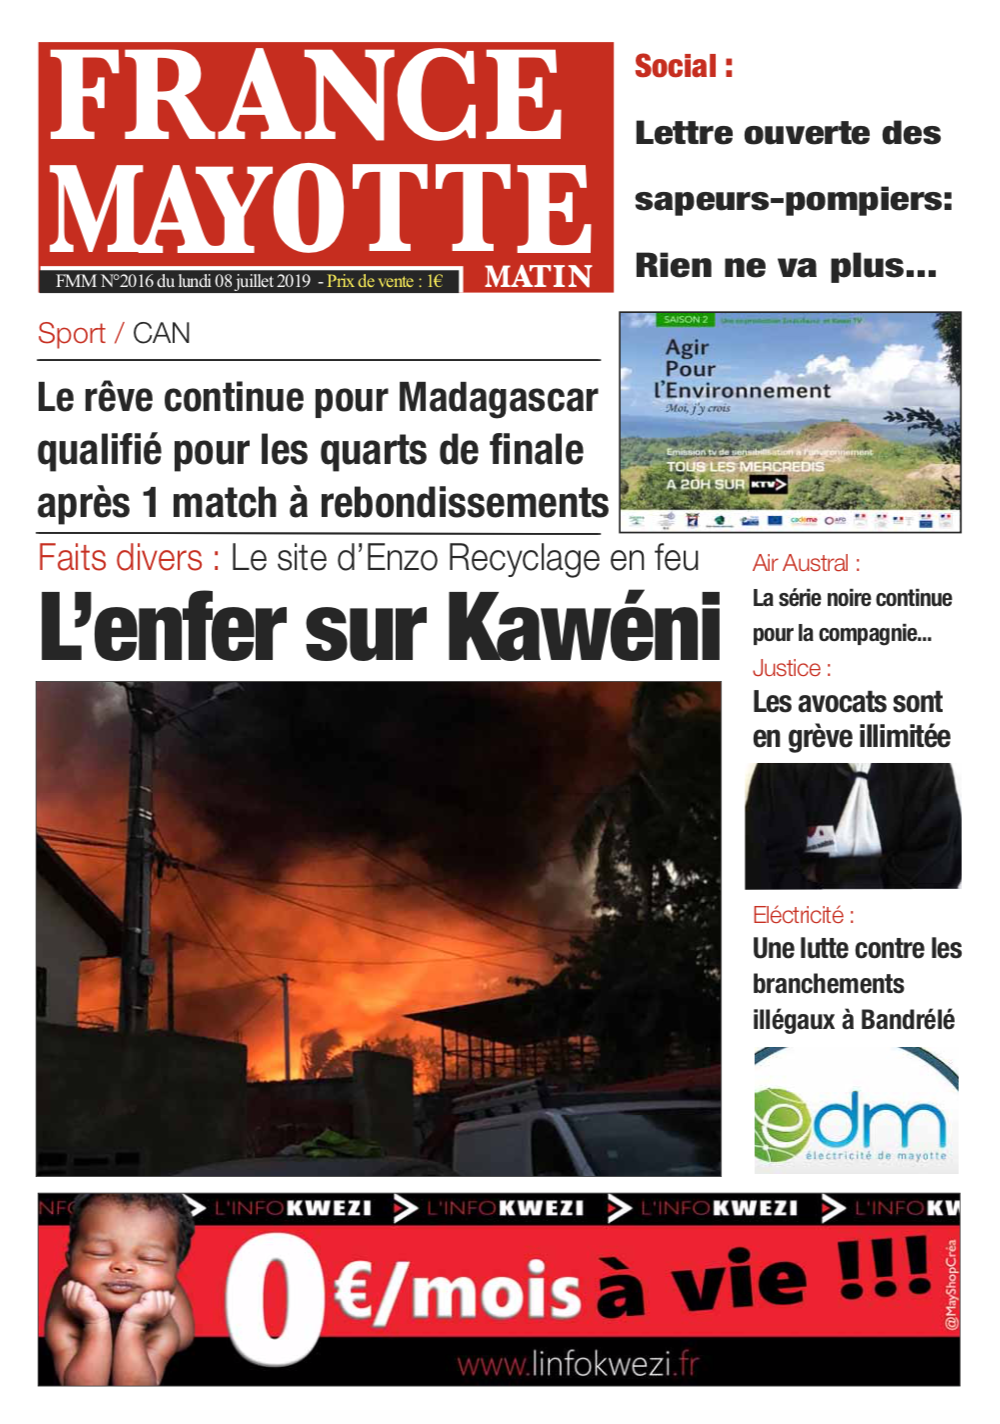 France Mayotte Lundi 8 juillet 2019